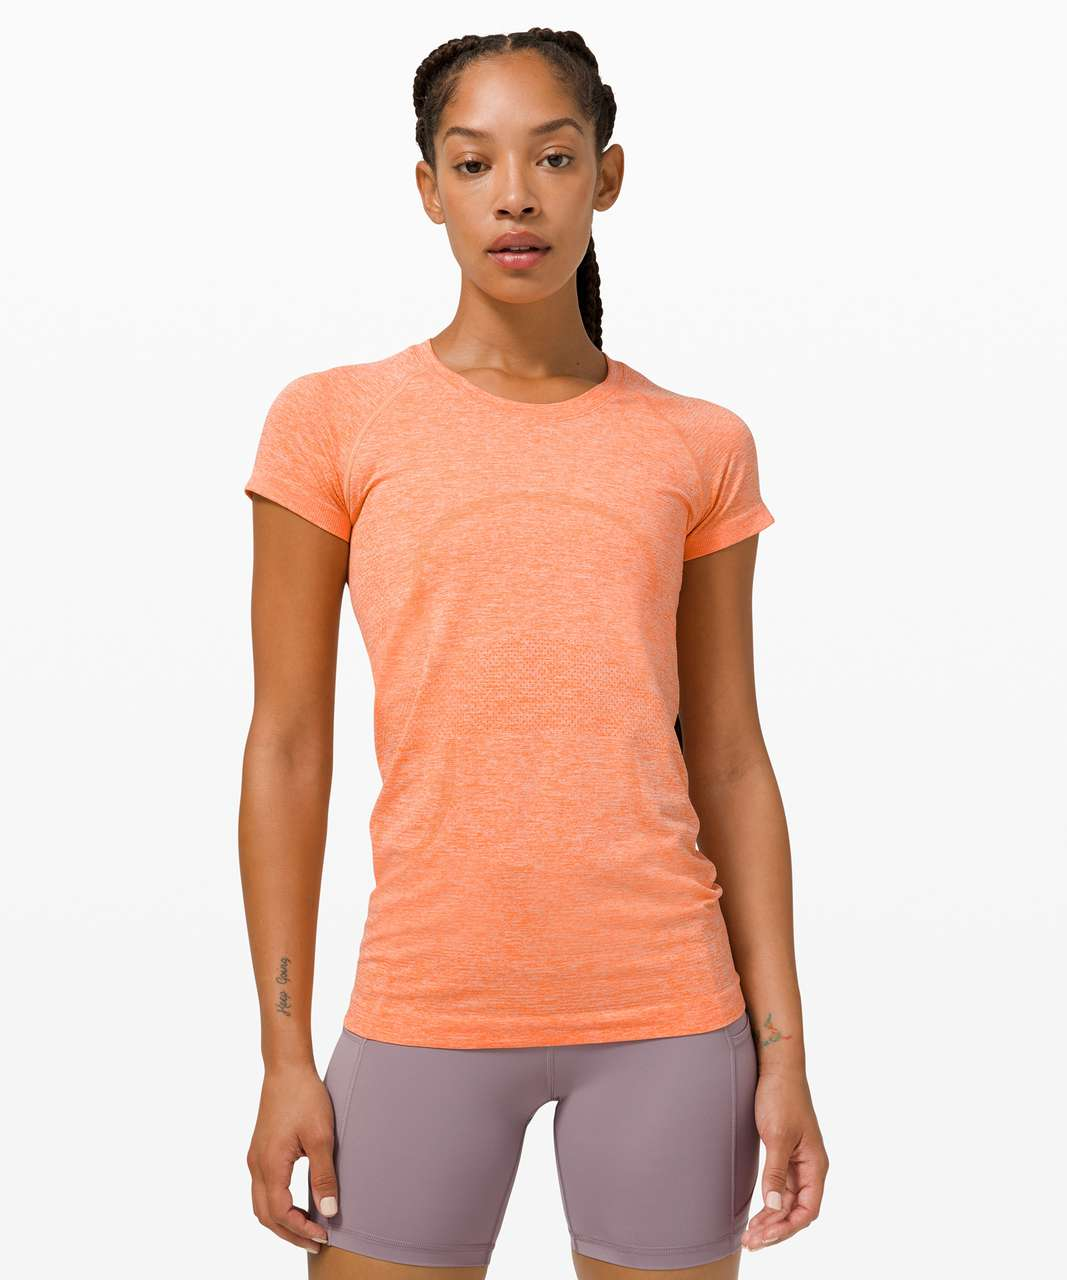 Lululemon Swiftly Tech Short Sleeve 2.0 - Amber Orange / White